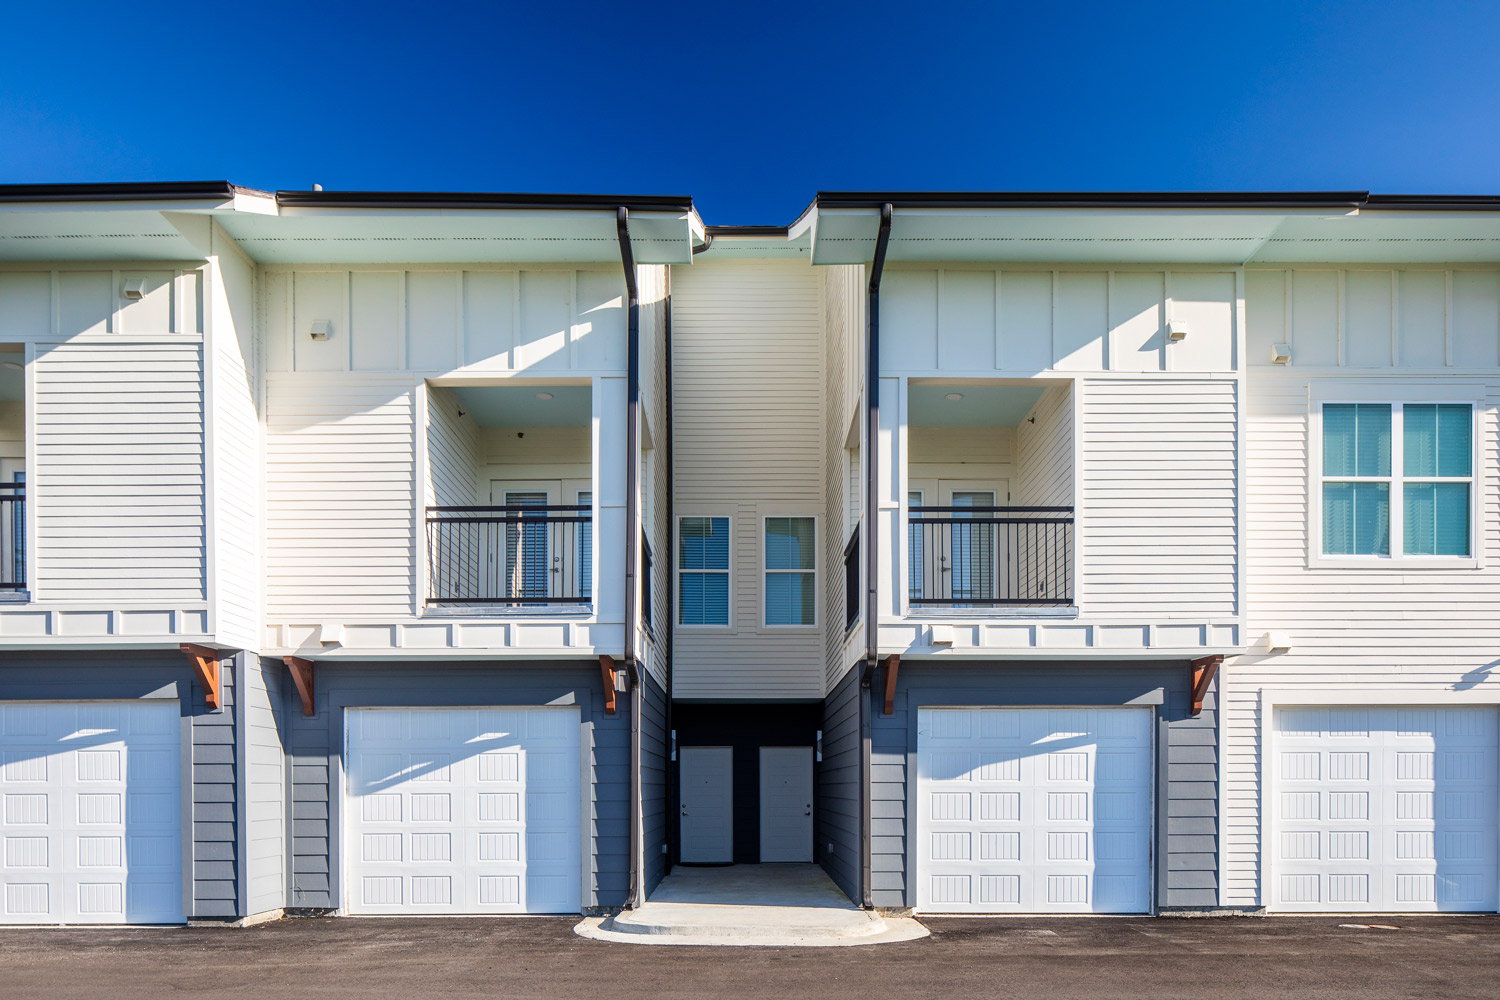 Townhomes with Garages at Sawgrass Point in Gonzales, Louisiana